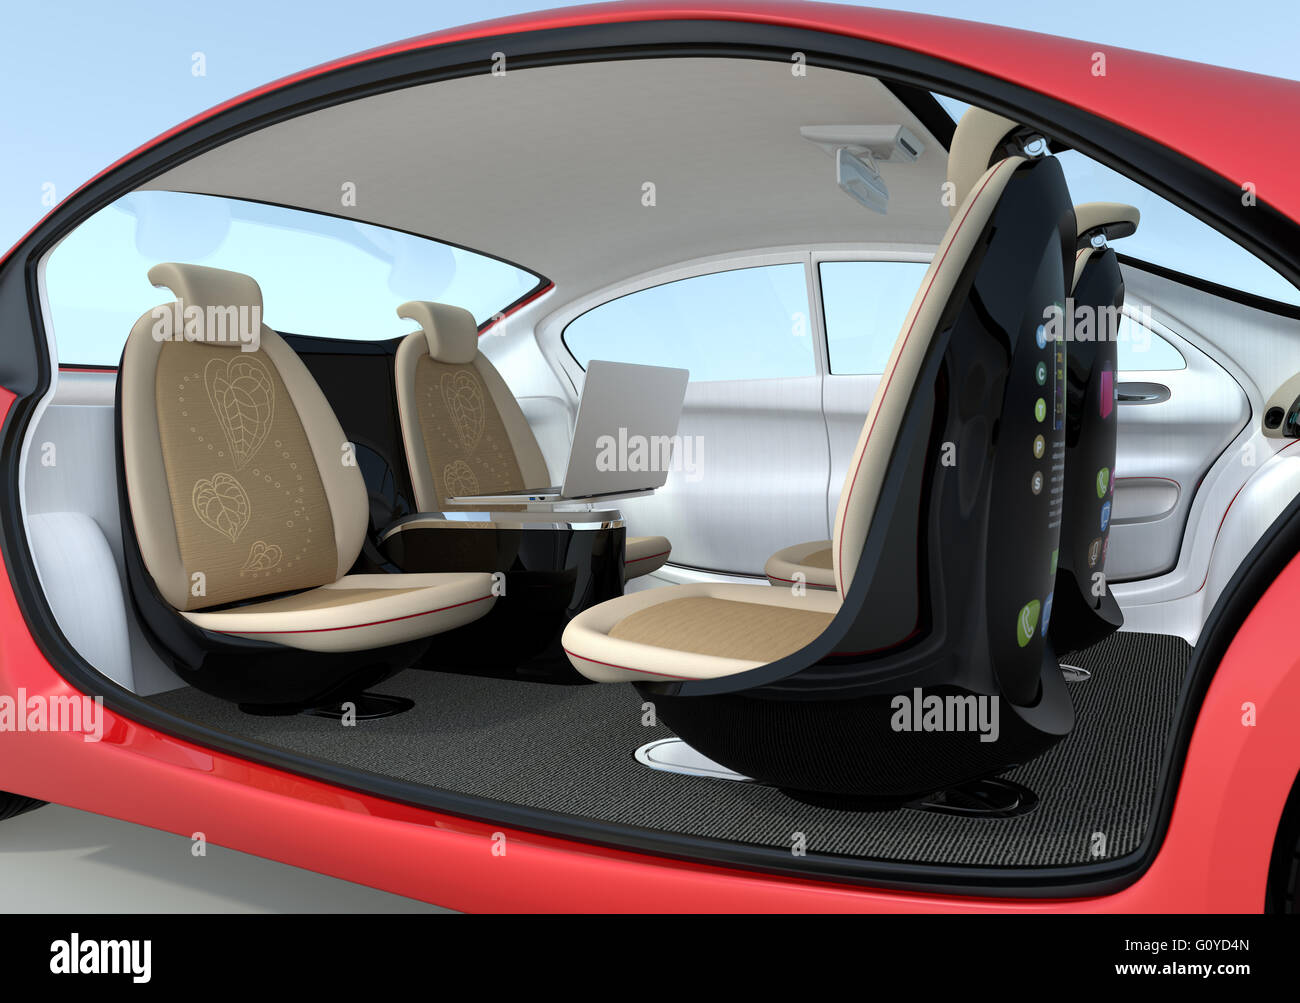 self driving car interior concept driver seats could turned to rear stock photo 103865237 alamy. Black Bedroom Furniture Sets. Home Design Ideas